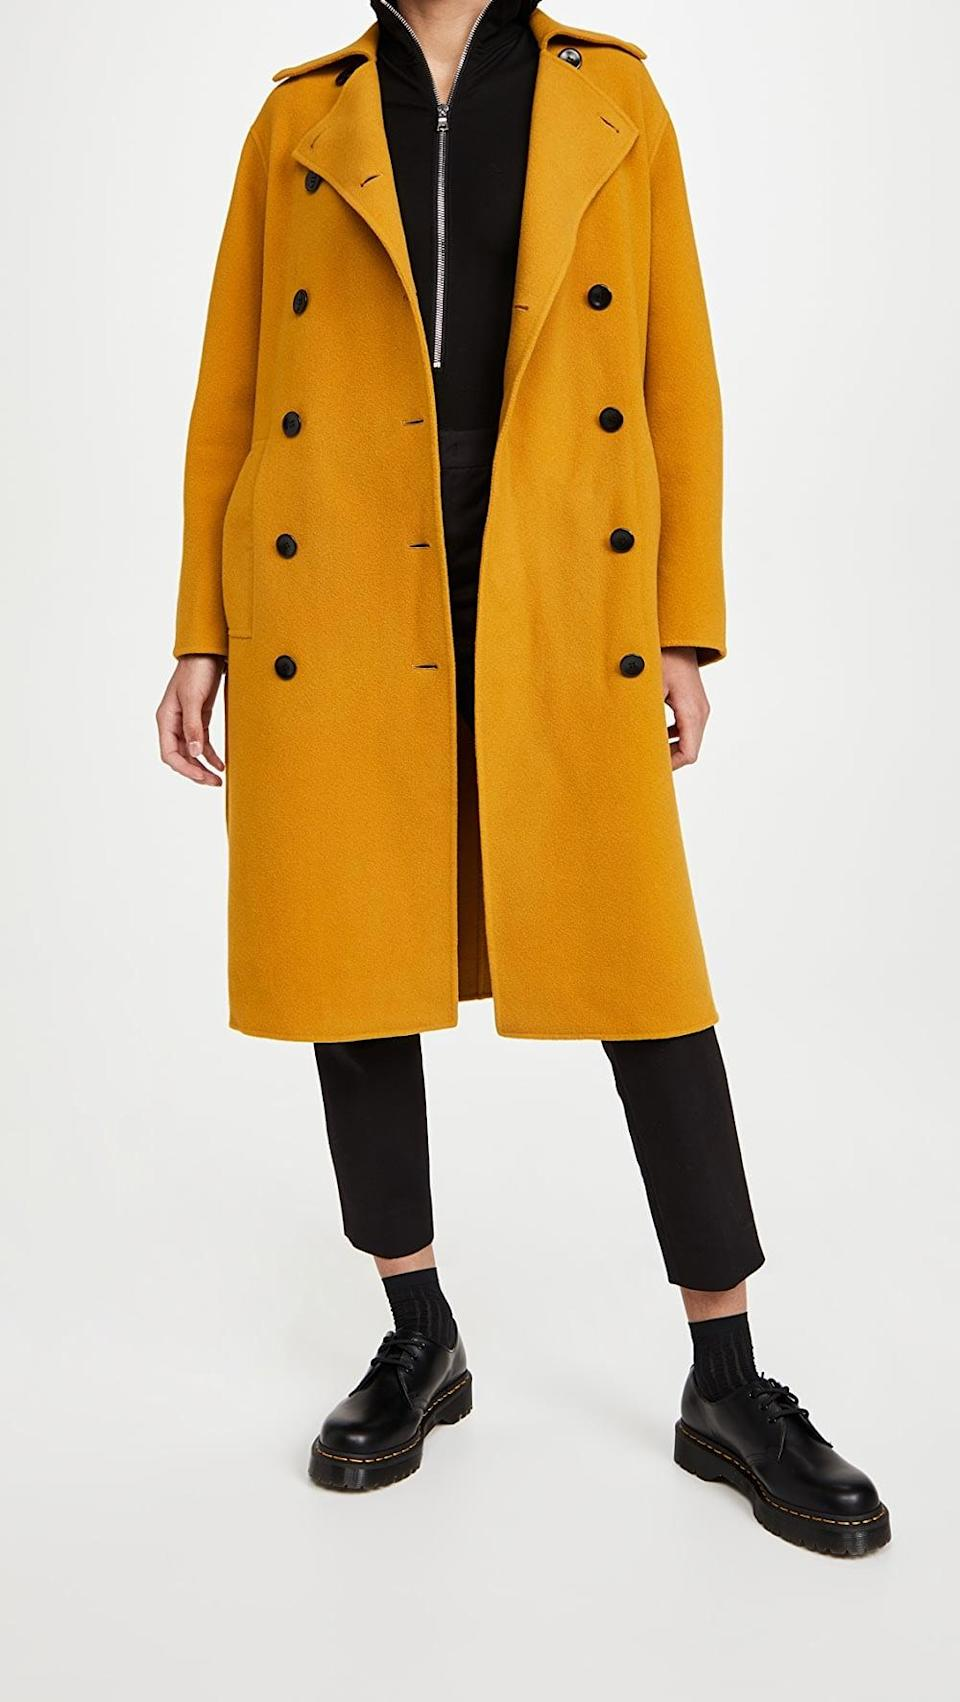 <p>This <span>Proenza Schouler White Label Doubleface Double Breasted Long Coat</span> ($975) is undeniably cool. Throw it over any ensemble and you'll look effortlessly stylish.</p>